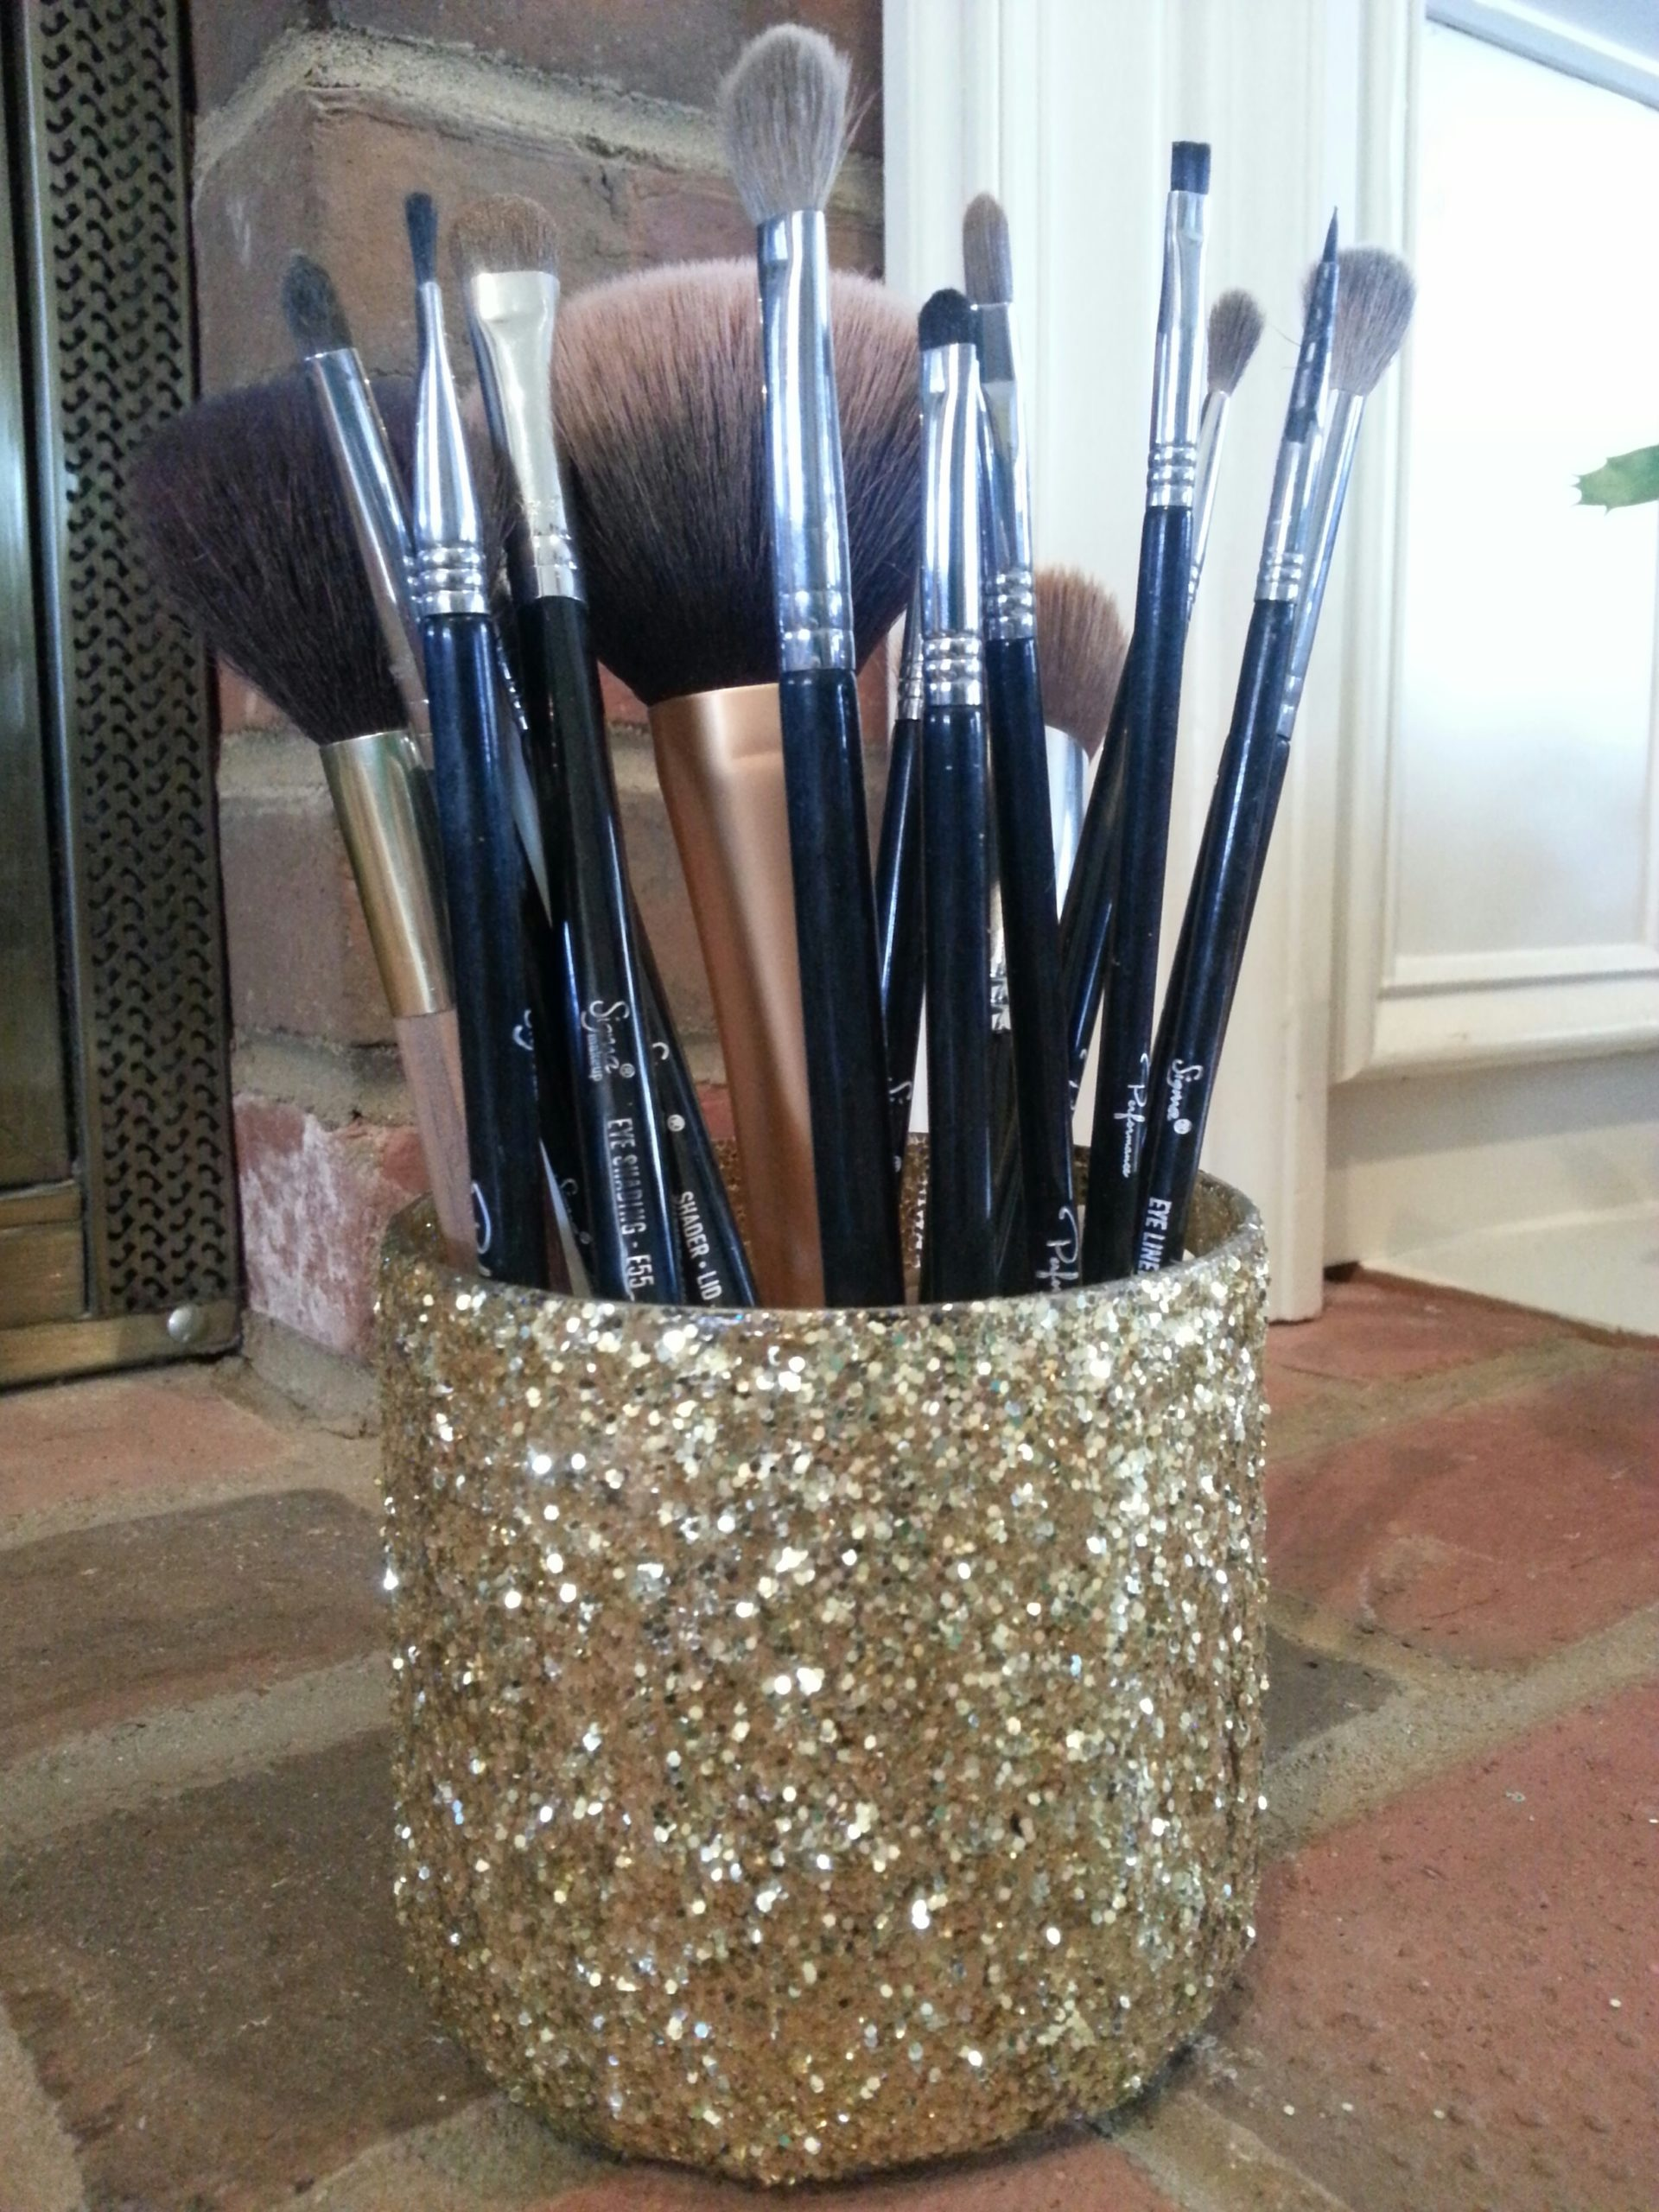 If you love glitz and glam you need to make this DIY Makeup Brush Holder. First Look.